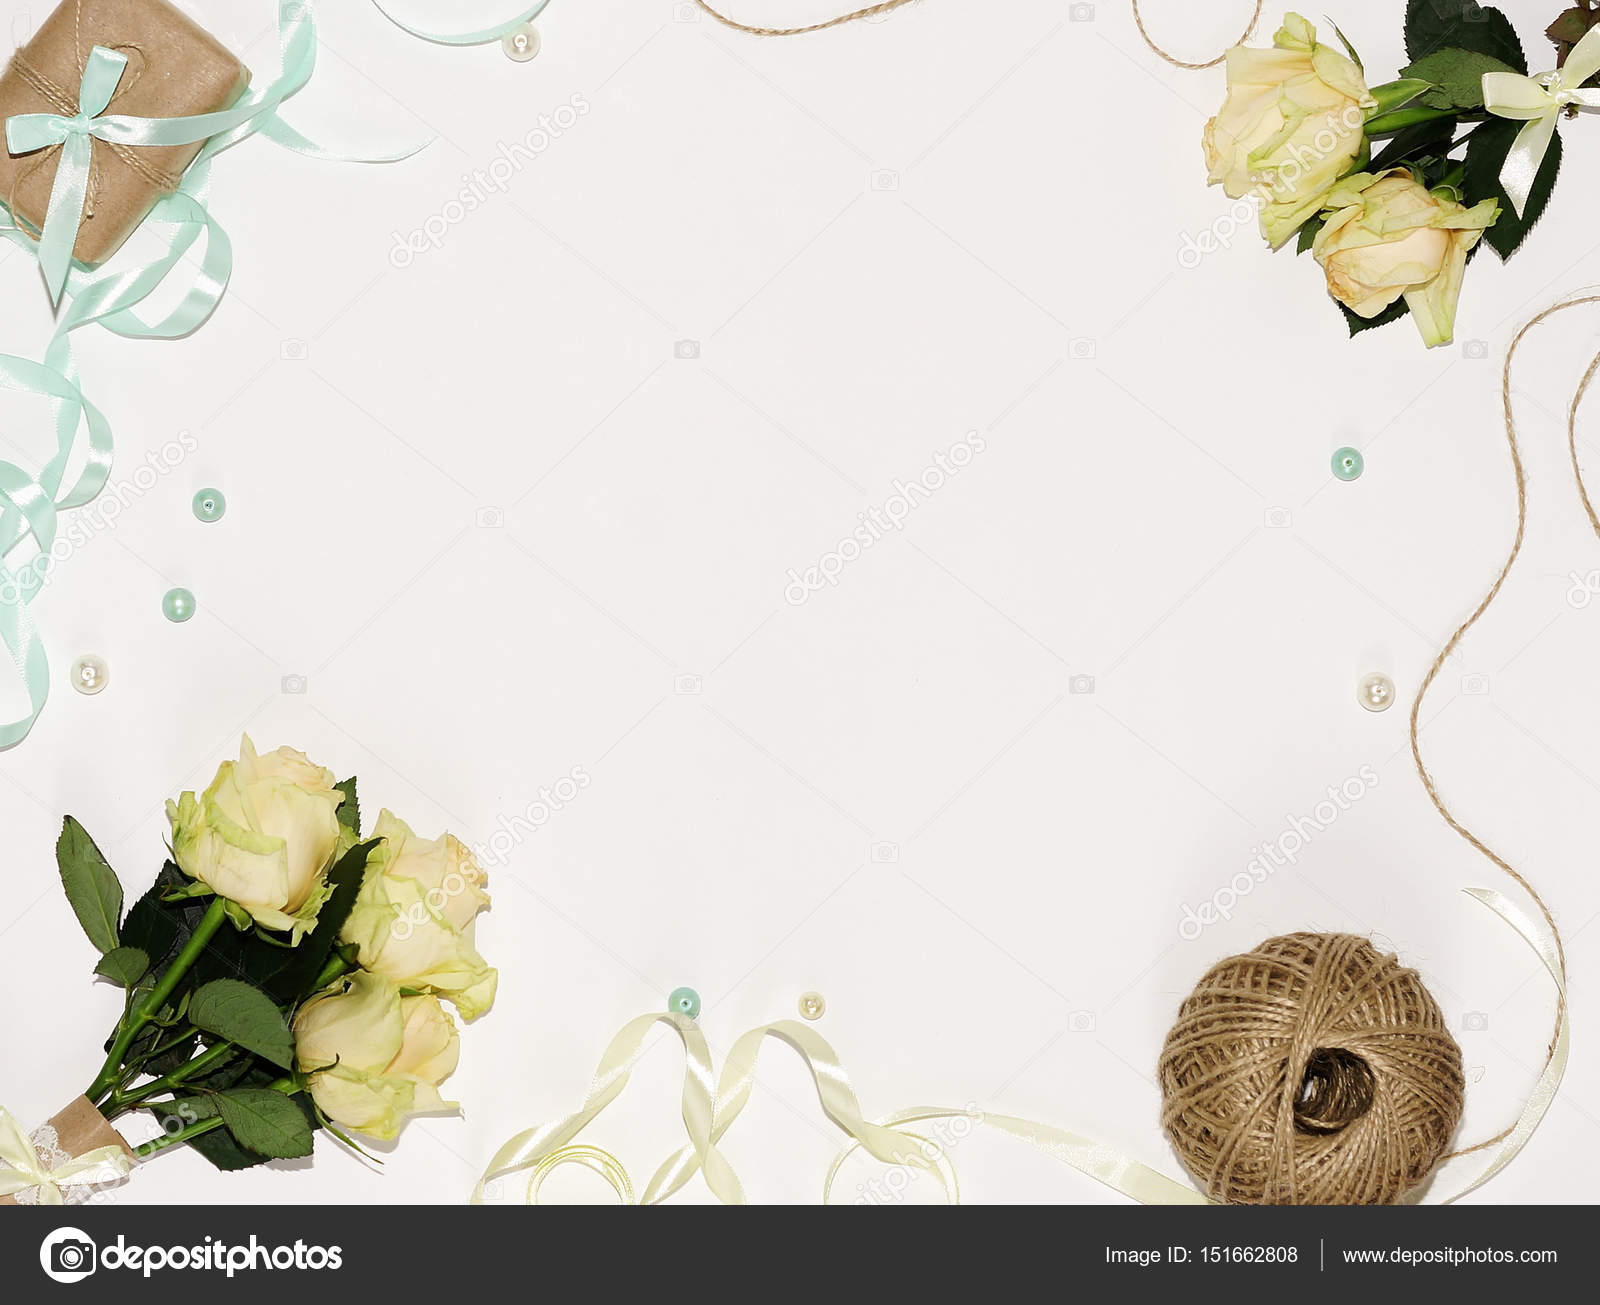 office stock depositphotos s workspace background bouquet top beautiful white on of a flowers computer cup photo table view coffee desk women with